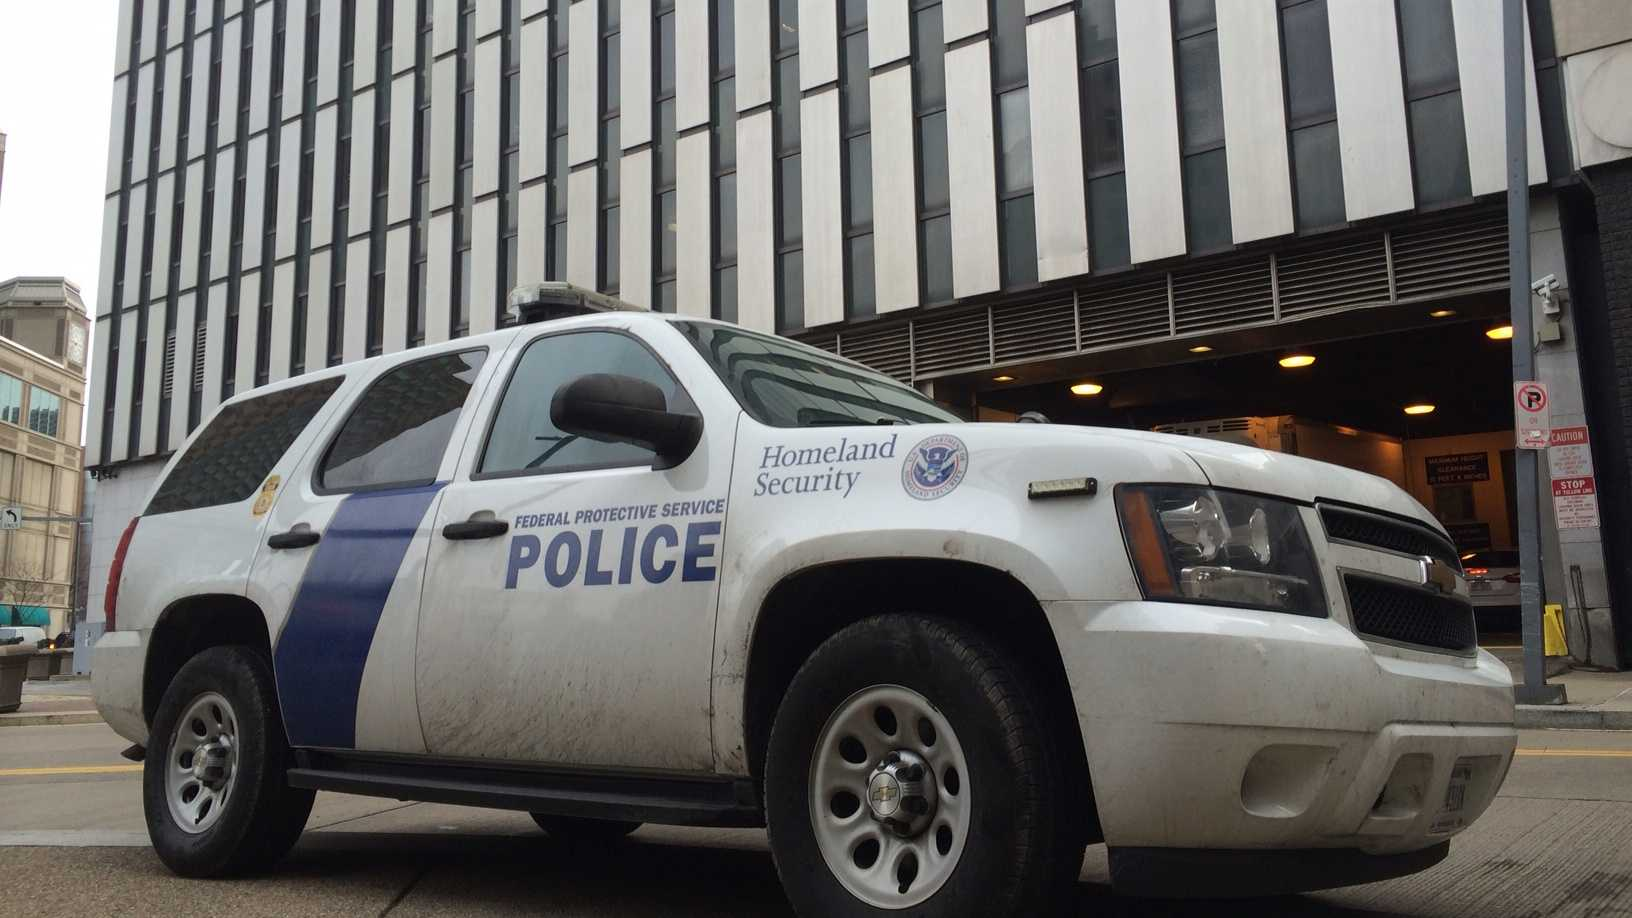 The Federal Protective Service is the police force of the Homeland Security department.